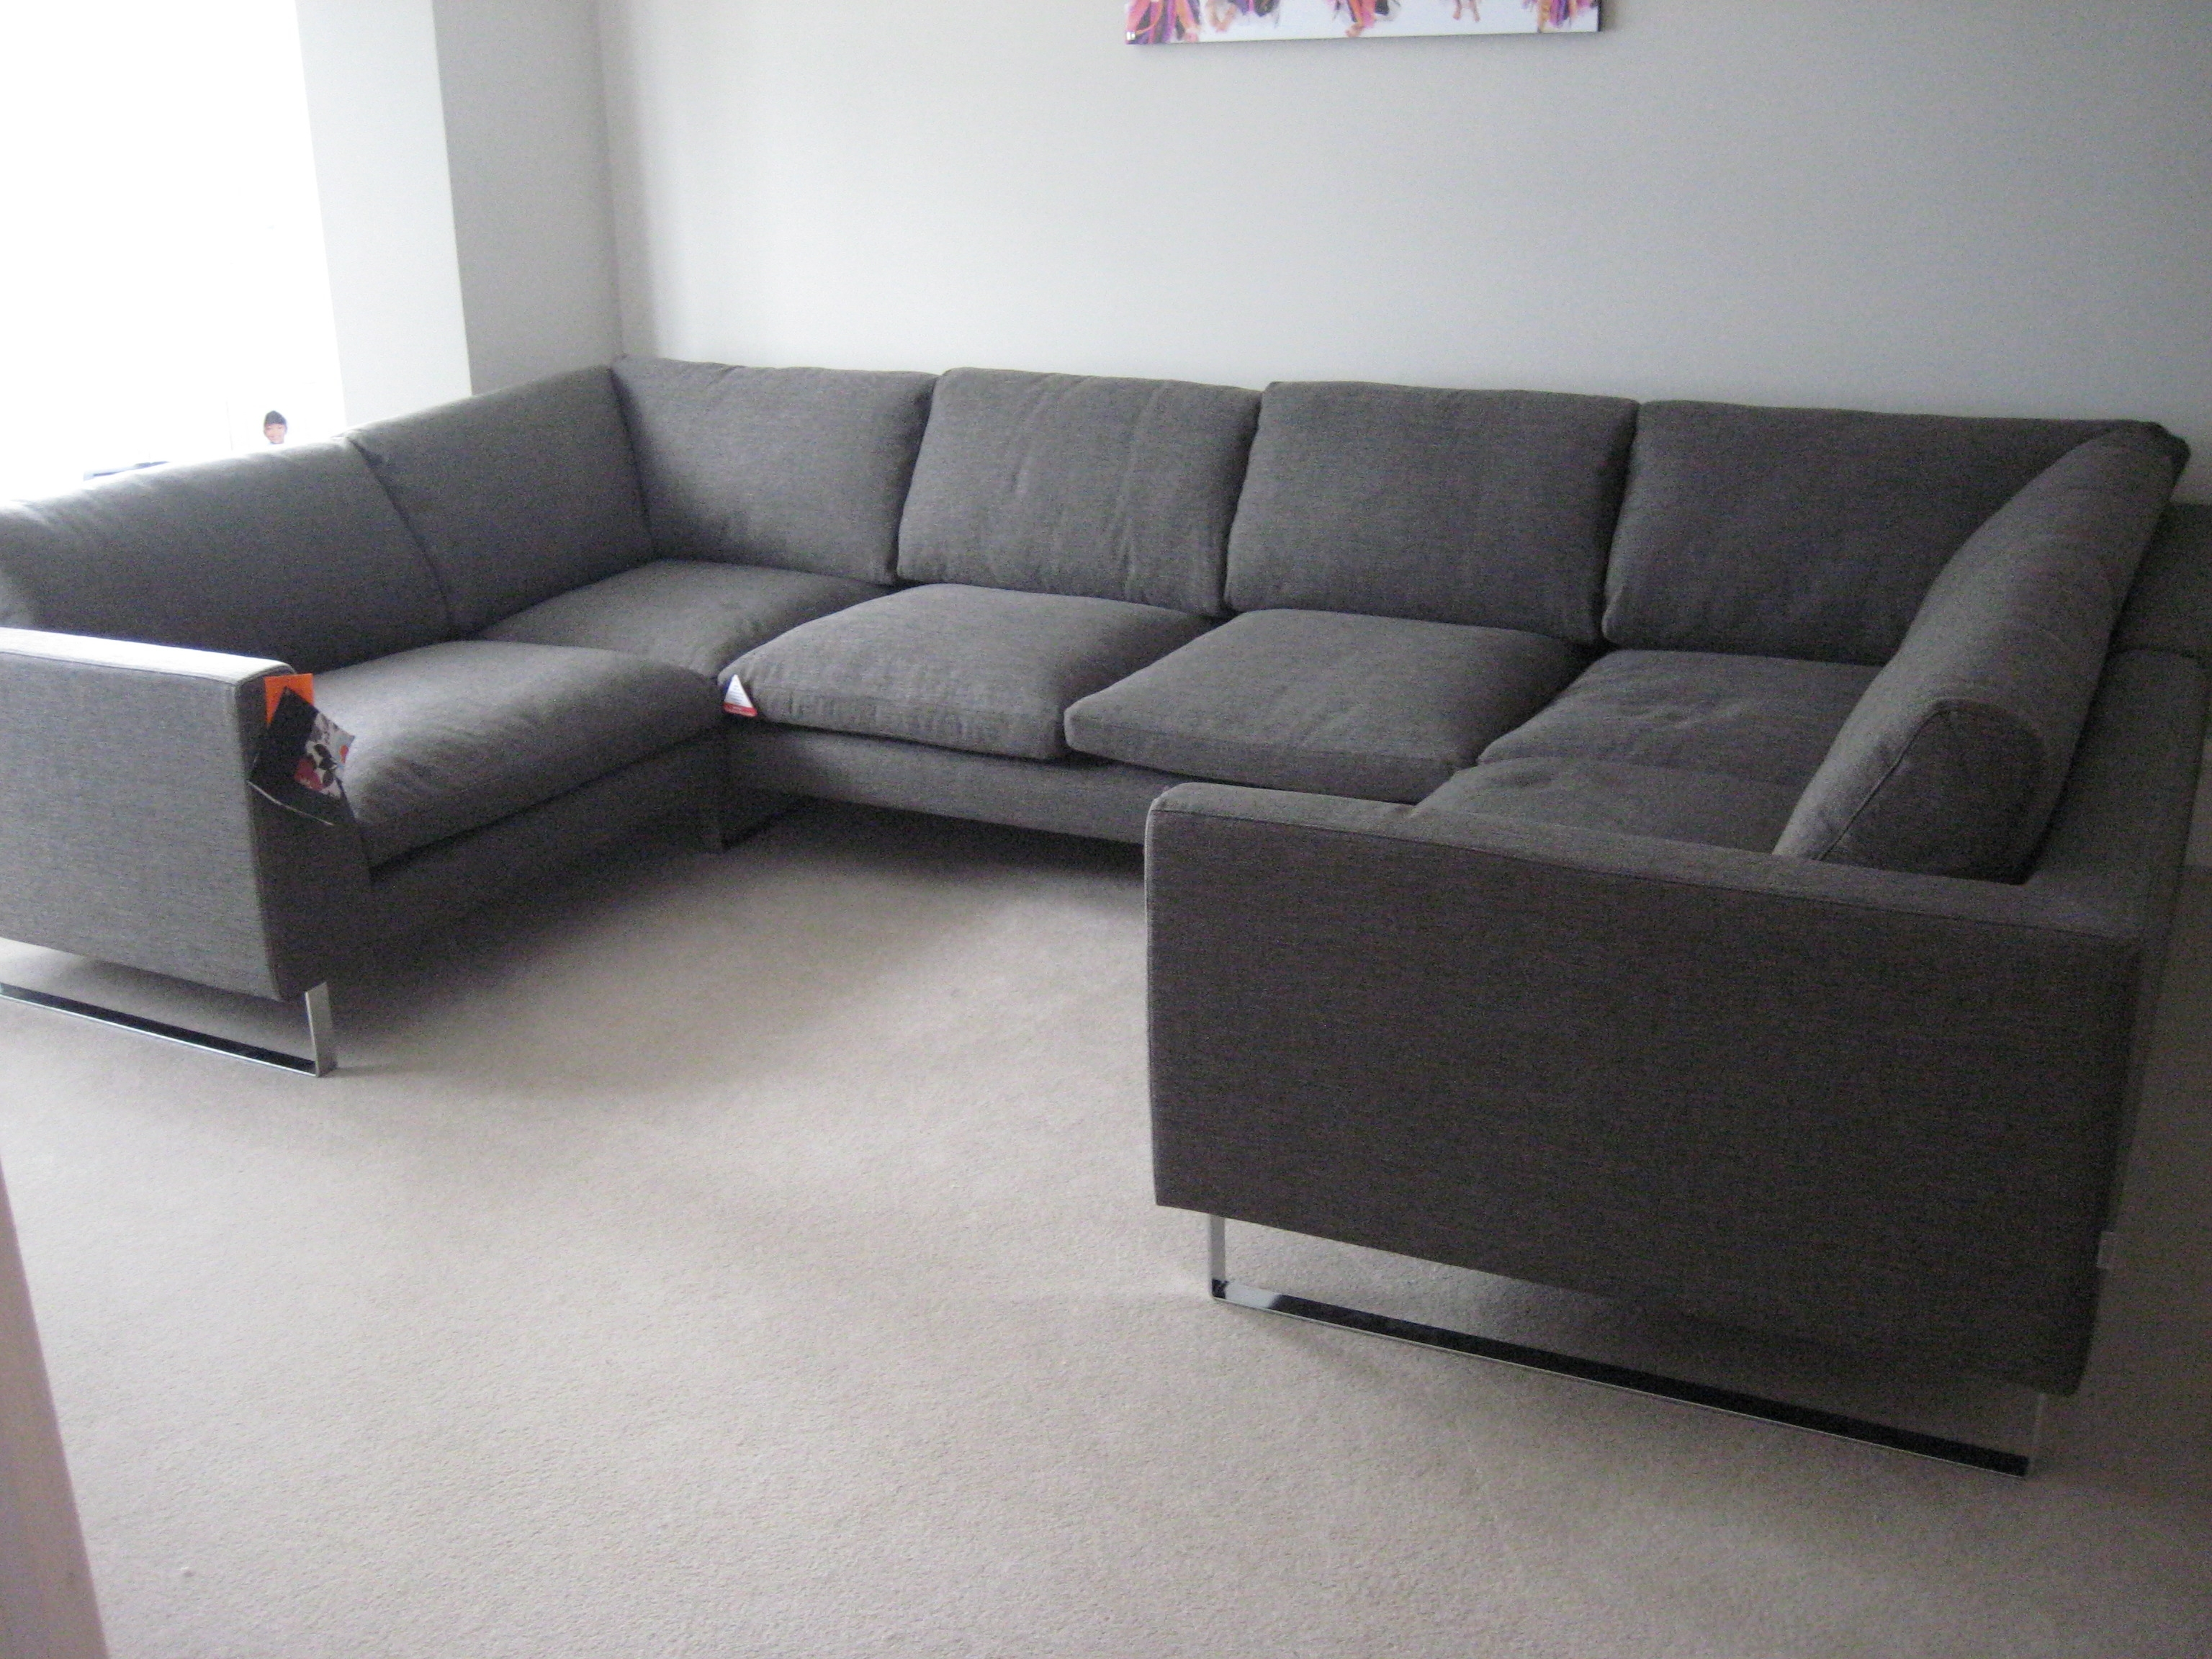 C Shaped Sofas 86 With C Shaped Sofas – Fjellkjeden Pertaining To Well Known C Shaped Sofas (View 4 of 15)